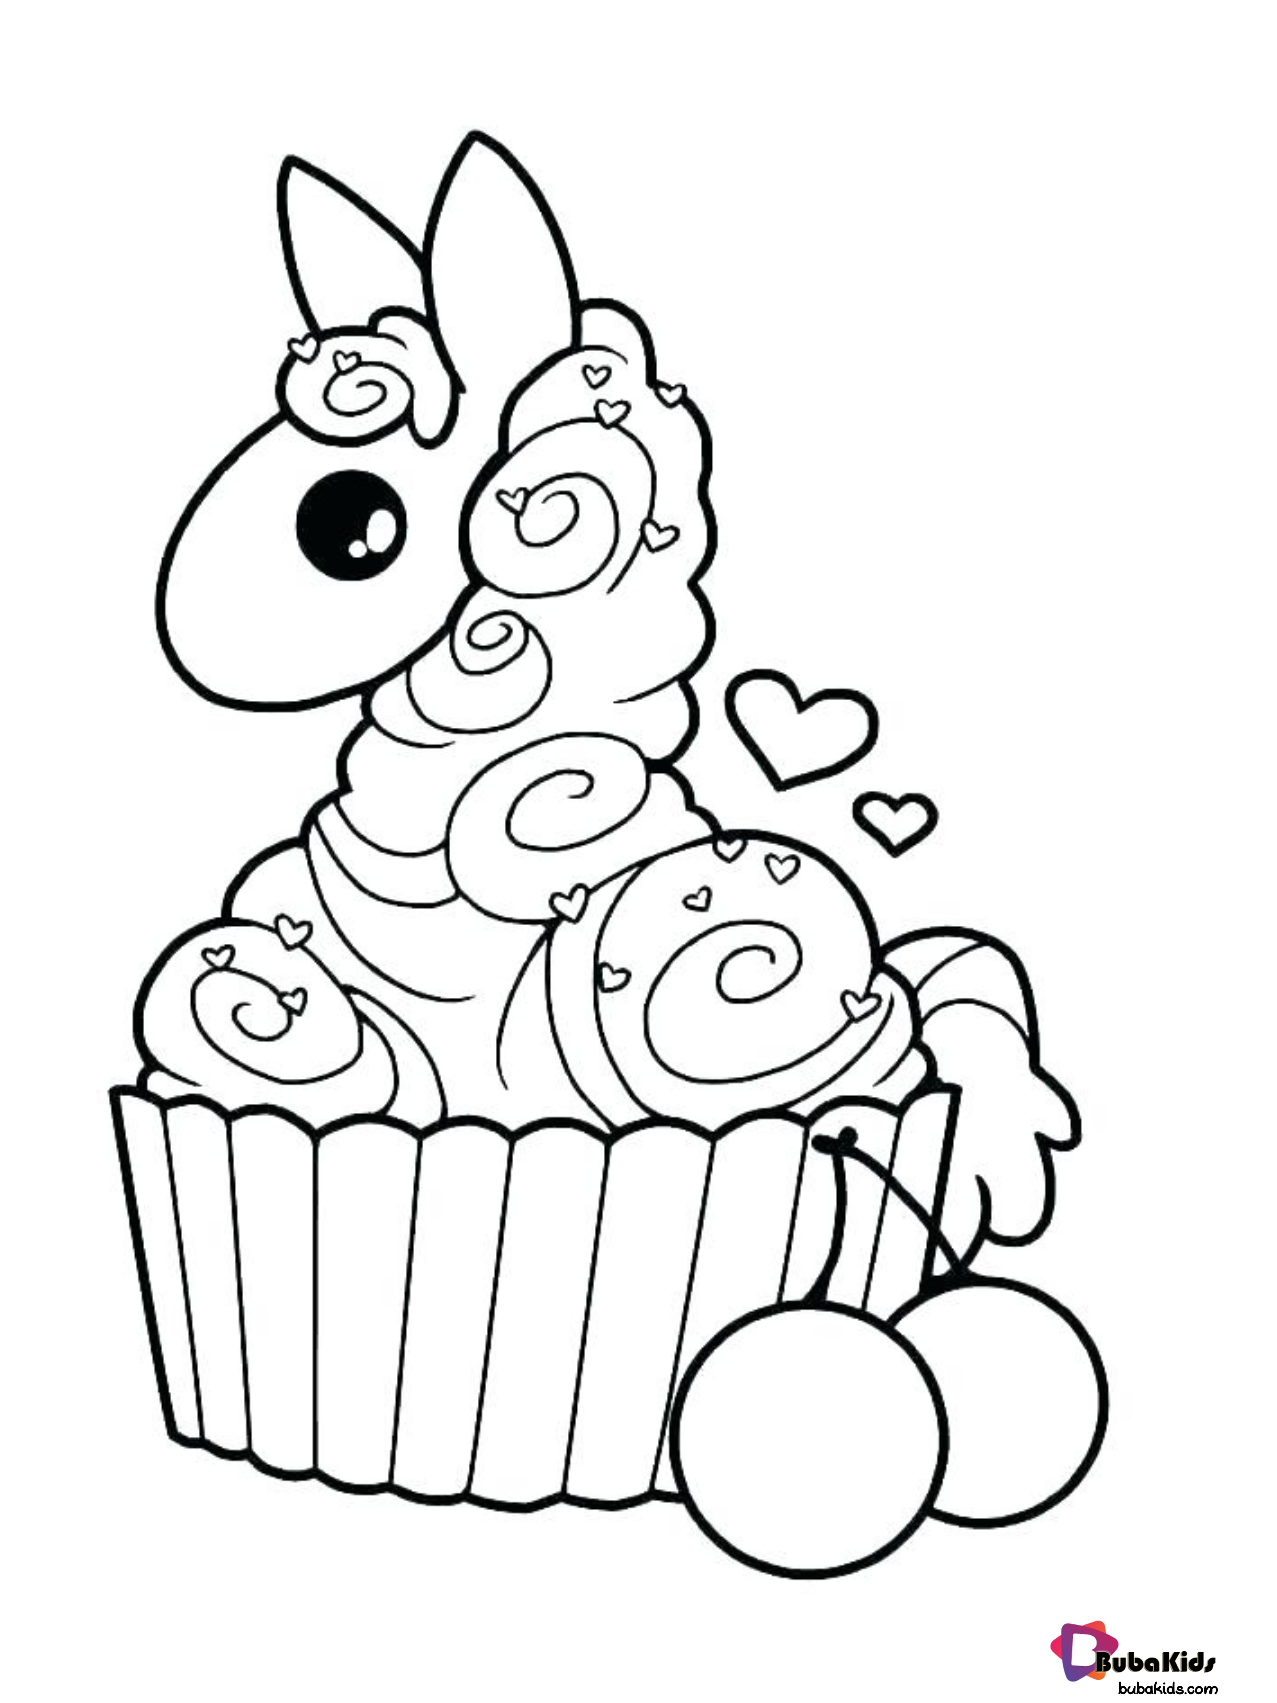 Cute Llama Printable Coloring Page Collection Of Cartoon Coloring Pages For Teenage Printable Coloring Pages Cartoon Coloring Pages Printable Coloring Pages